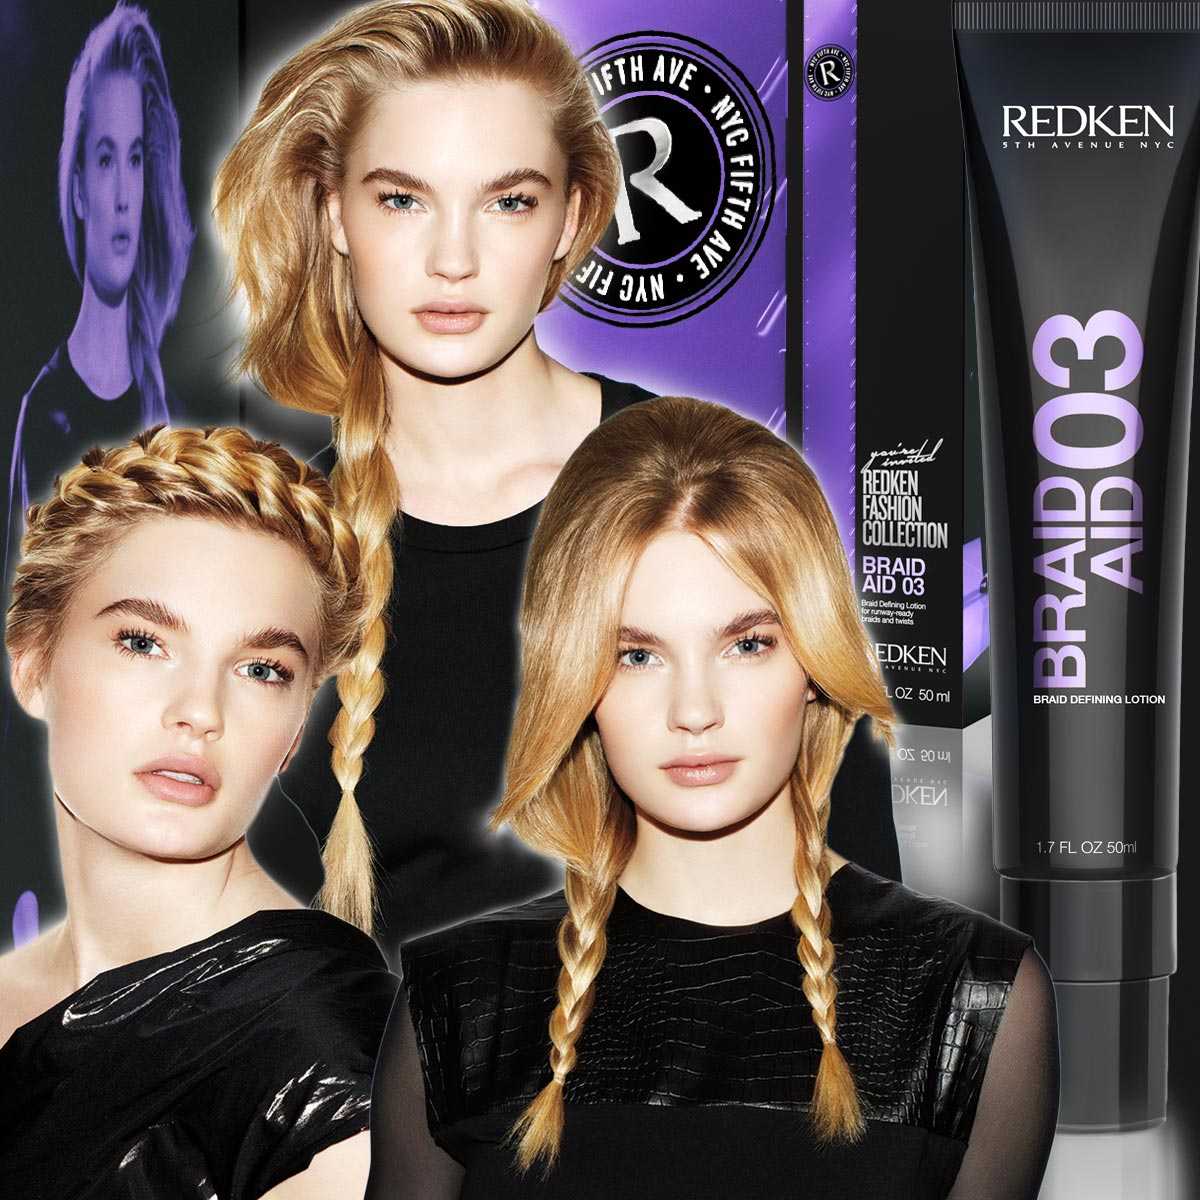 Hairstyles with braids or just classic plaited braids or with plaited braids in a bun will be more perfect if you use the right and quality styling for braids.